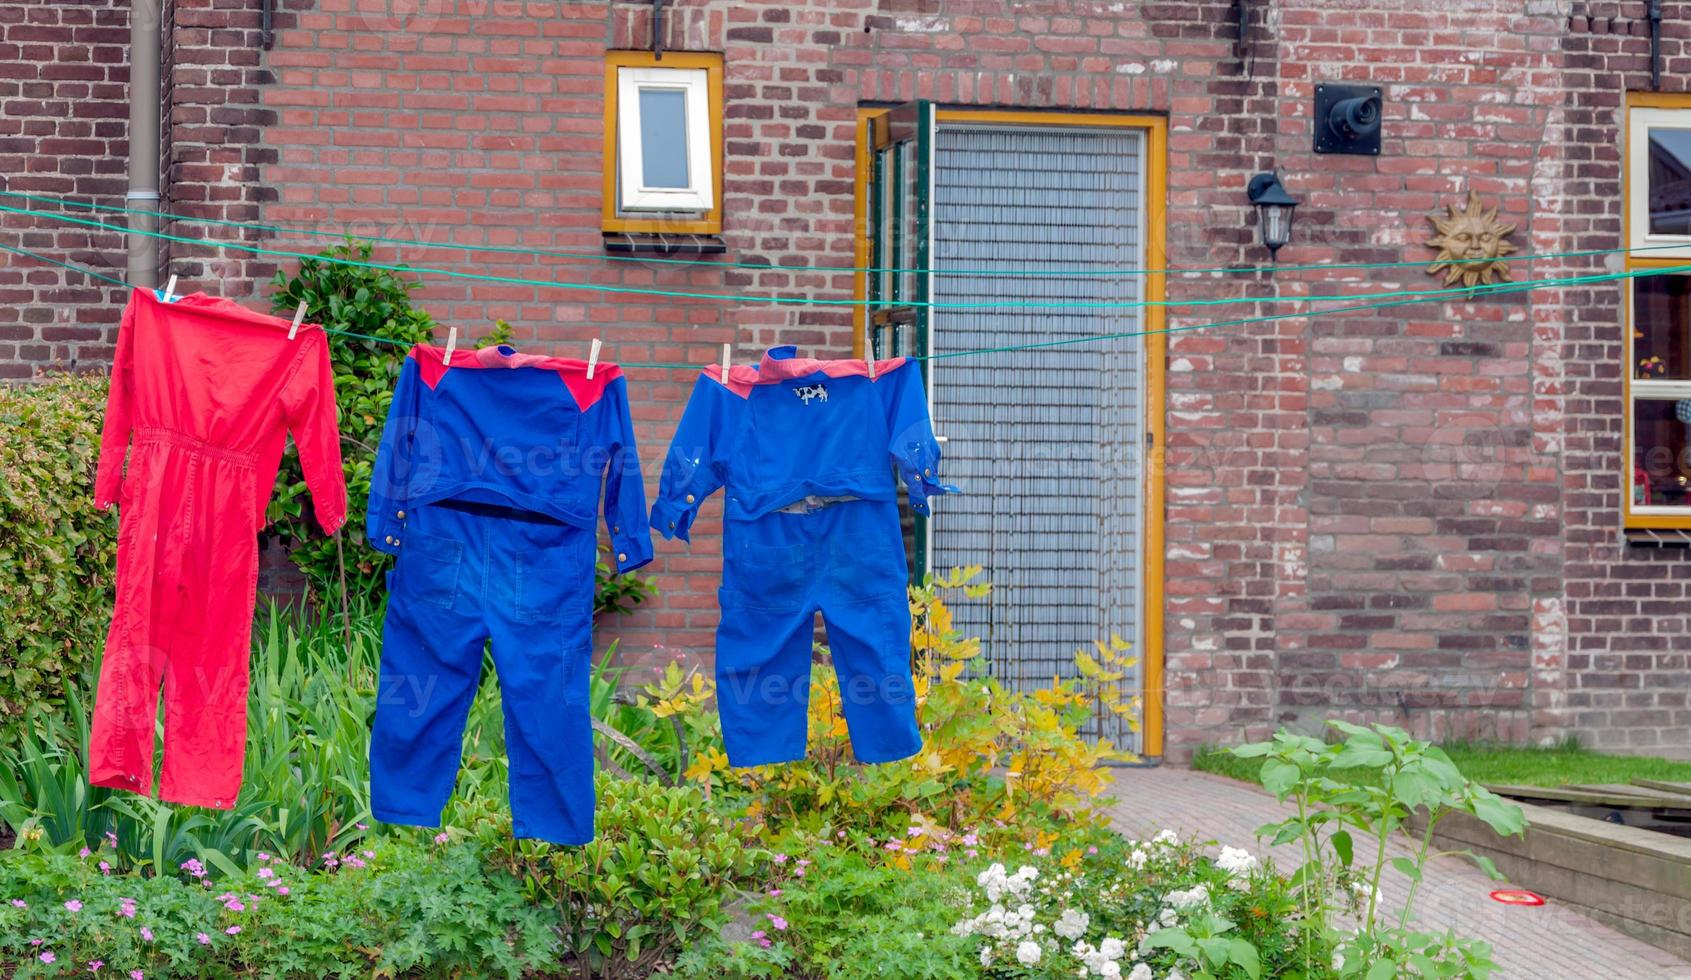 Colorful overalls on the clothesline of a farm photo